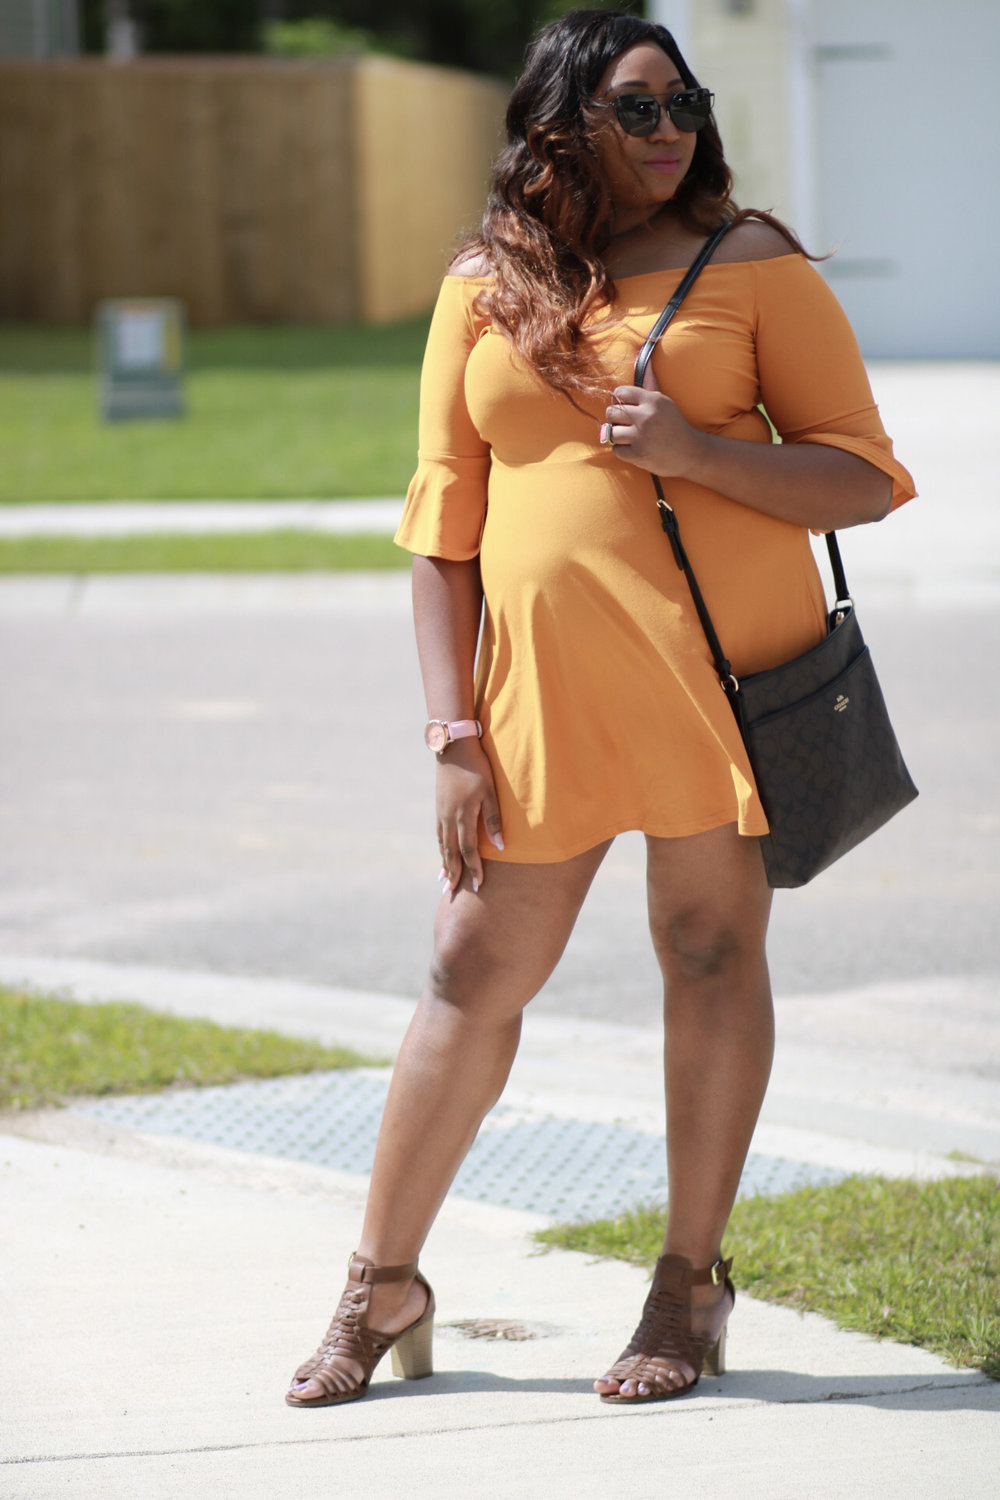 My newest addition - this cute yellow/mustard color dress from BooHoo!    Boohoo  - You will have to wait a few weeks to get it but its worth it. Style: Plus Amy Off The Shoulder    Amazon  has a very similar option.   Sunglasses:  Amazon